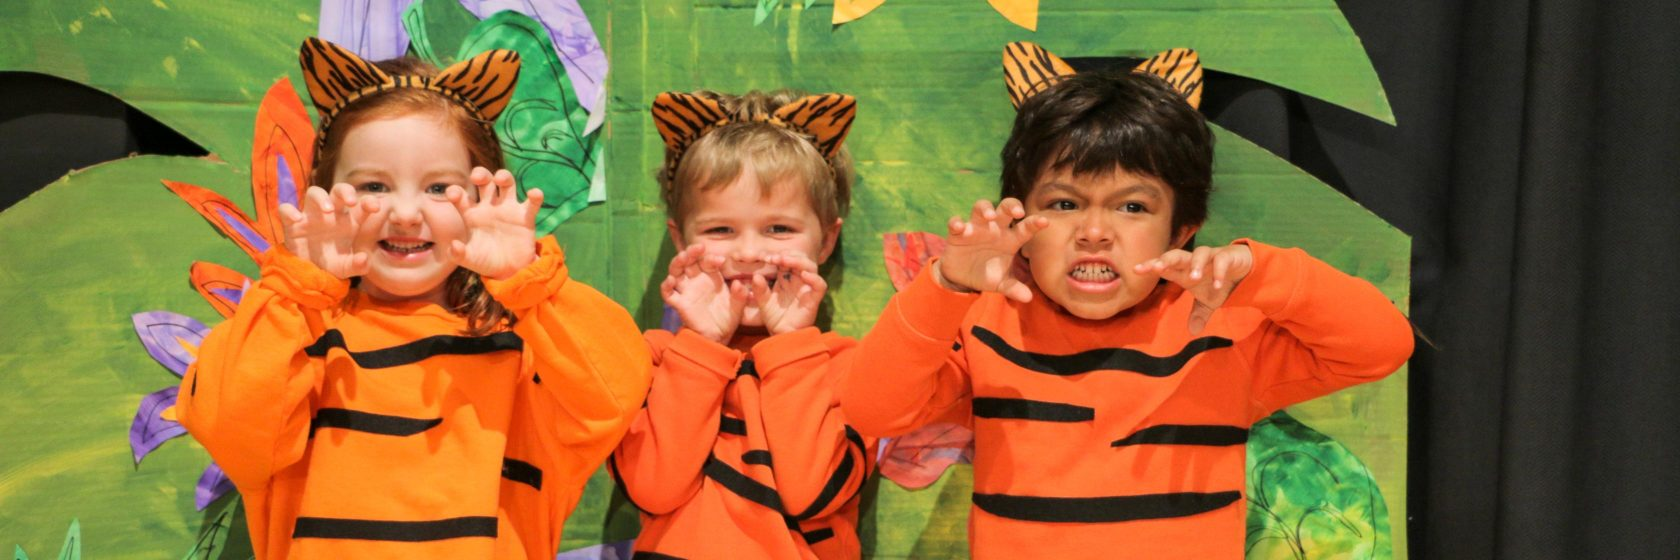 A group of children dressed as tigers posing on stage.